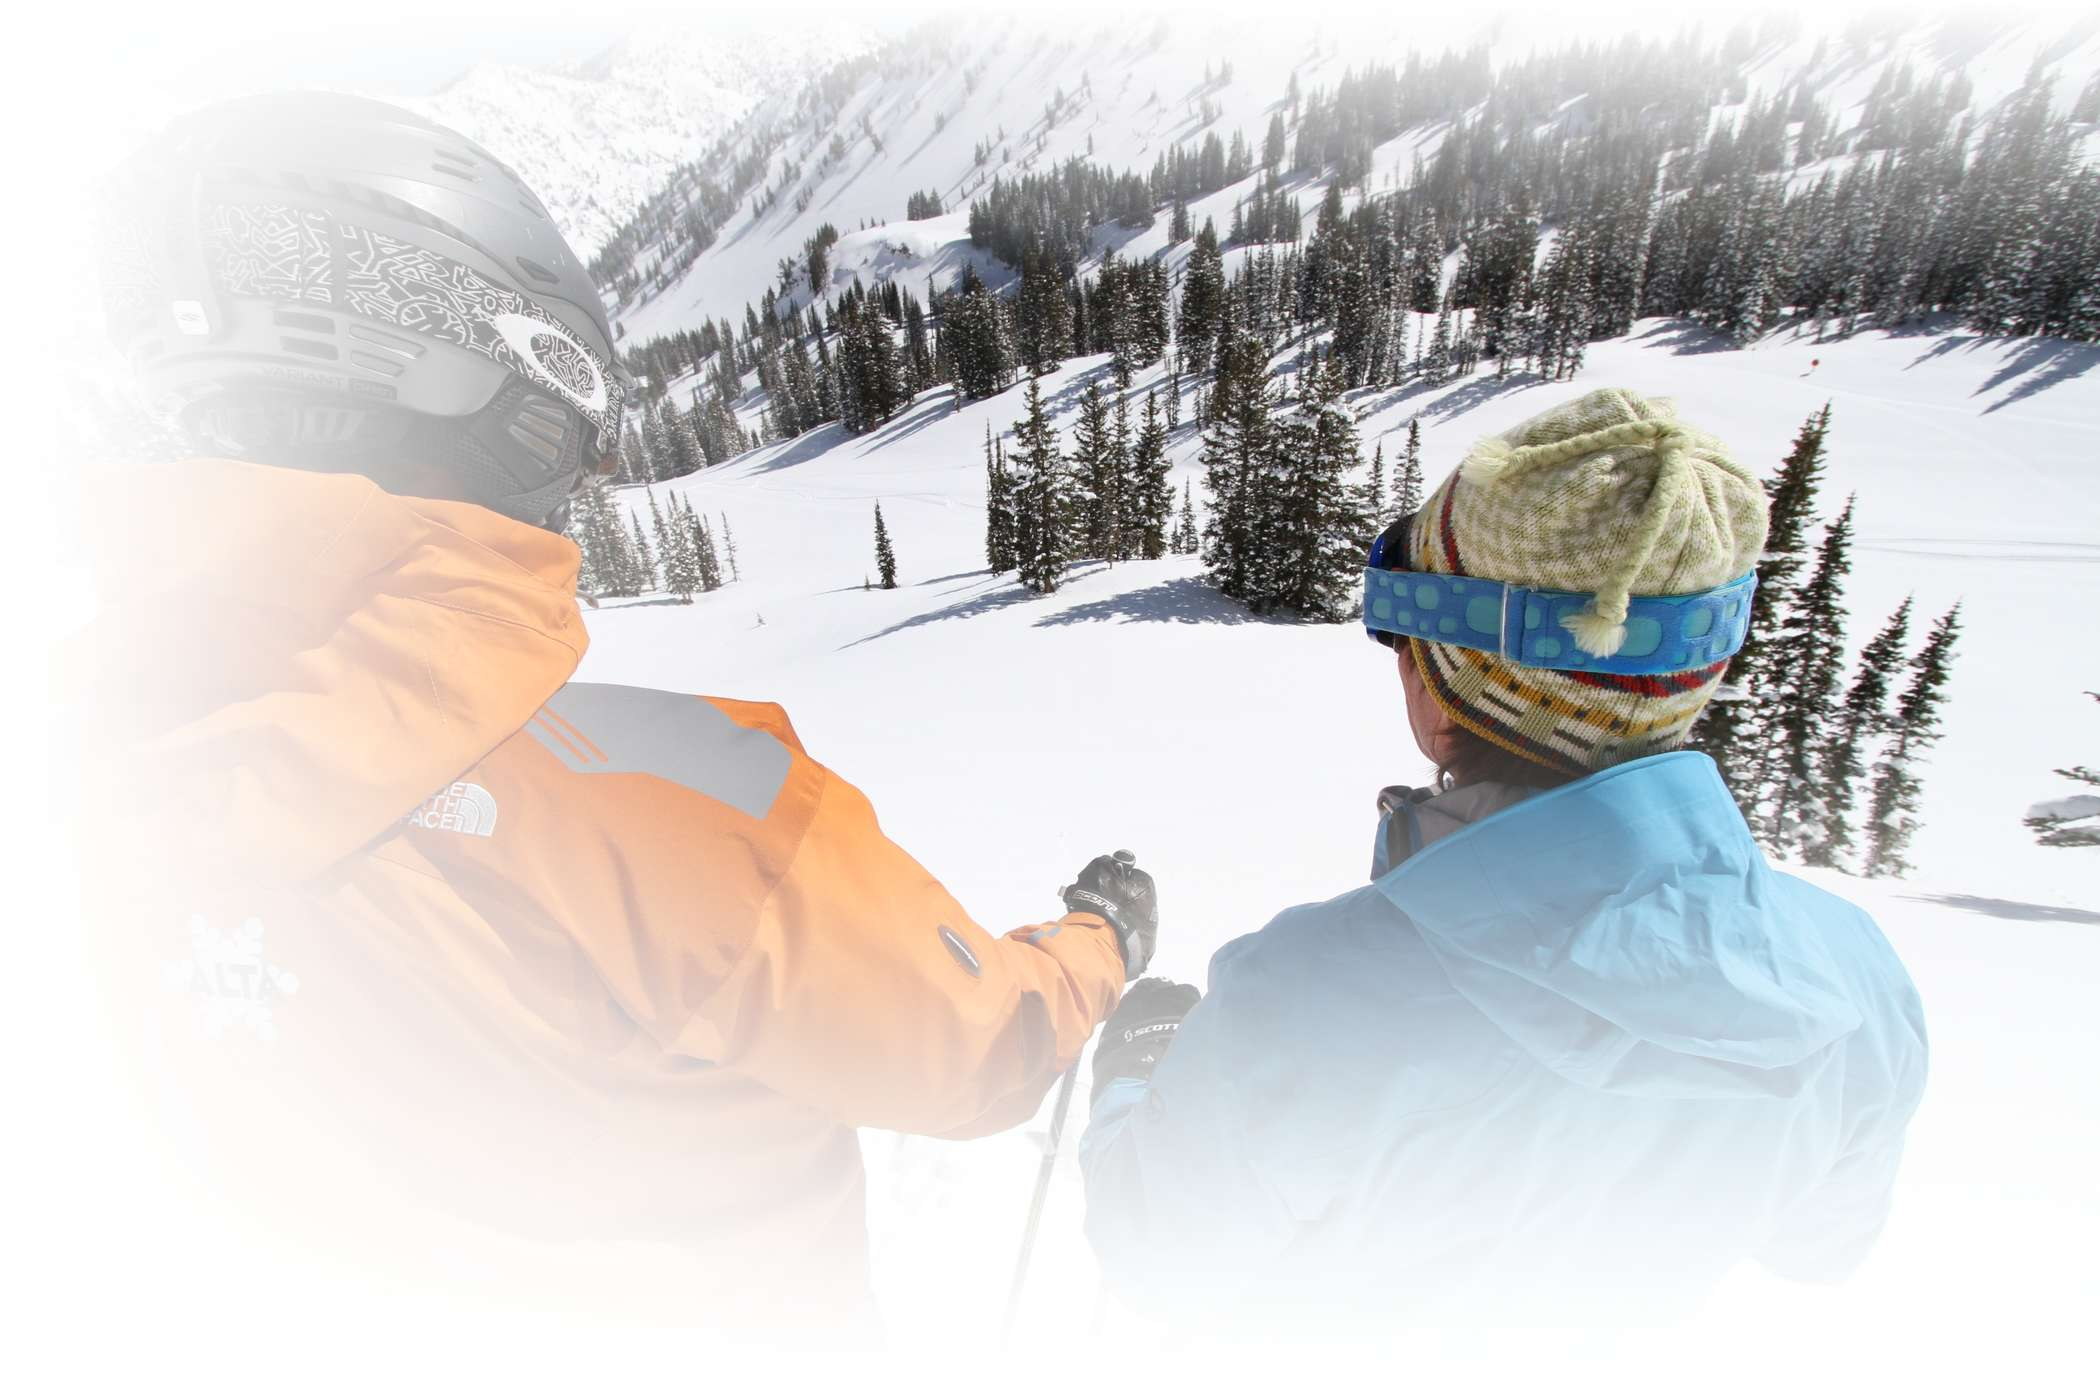 An Alf Engen Ski School instructor shows off some great tips during a lesson at Alta Ski Area